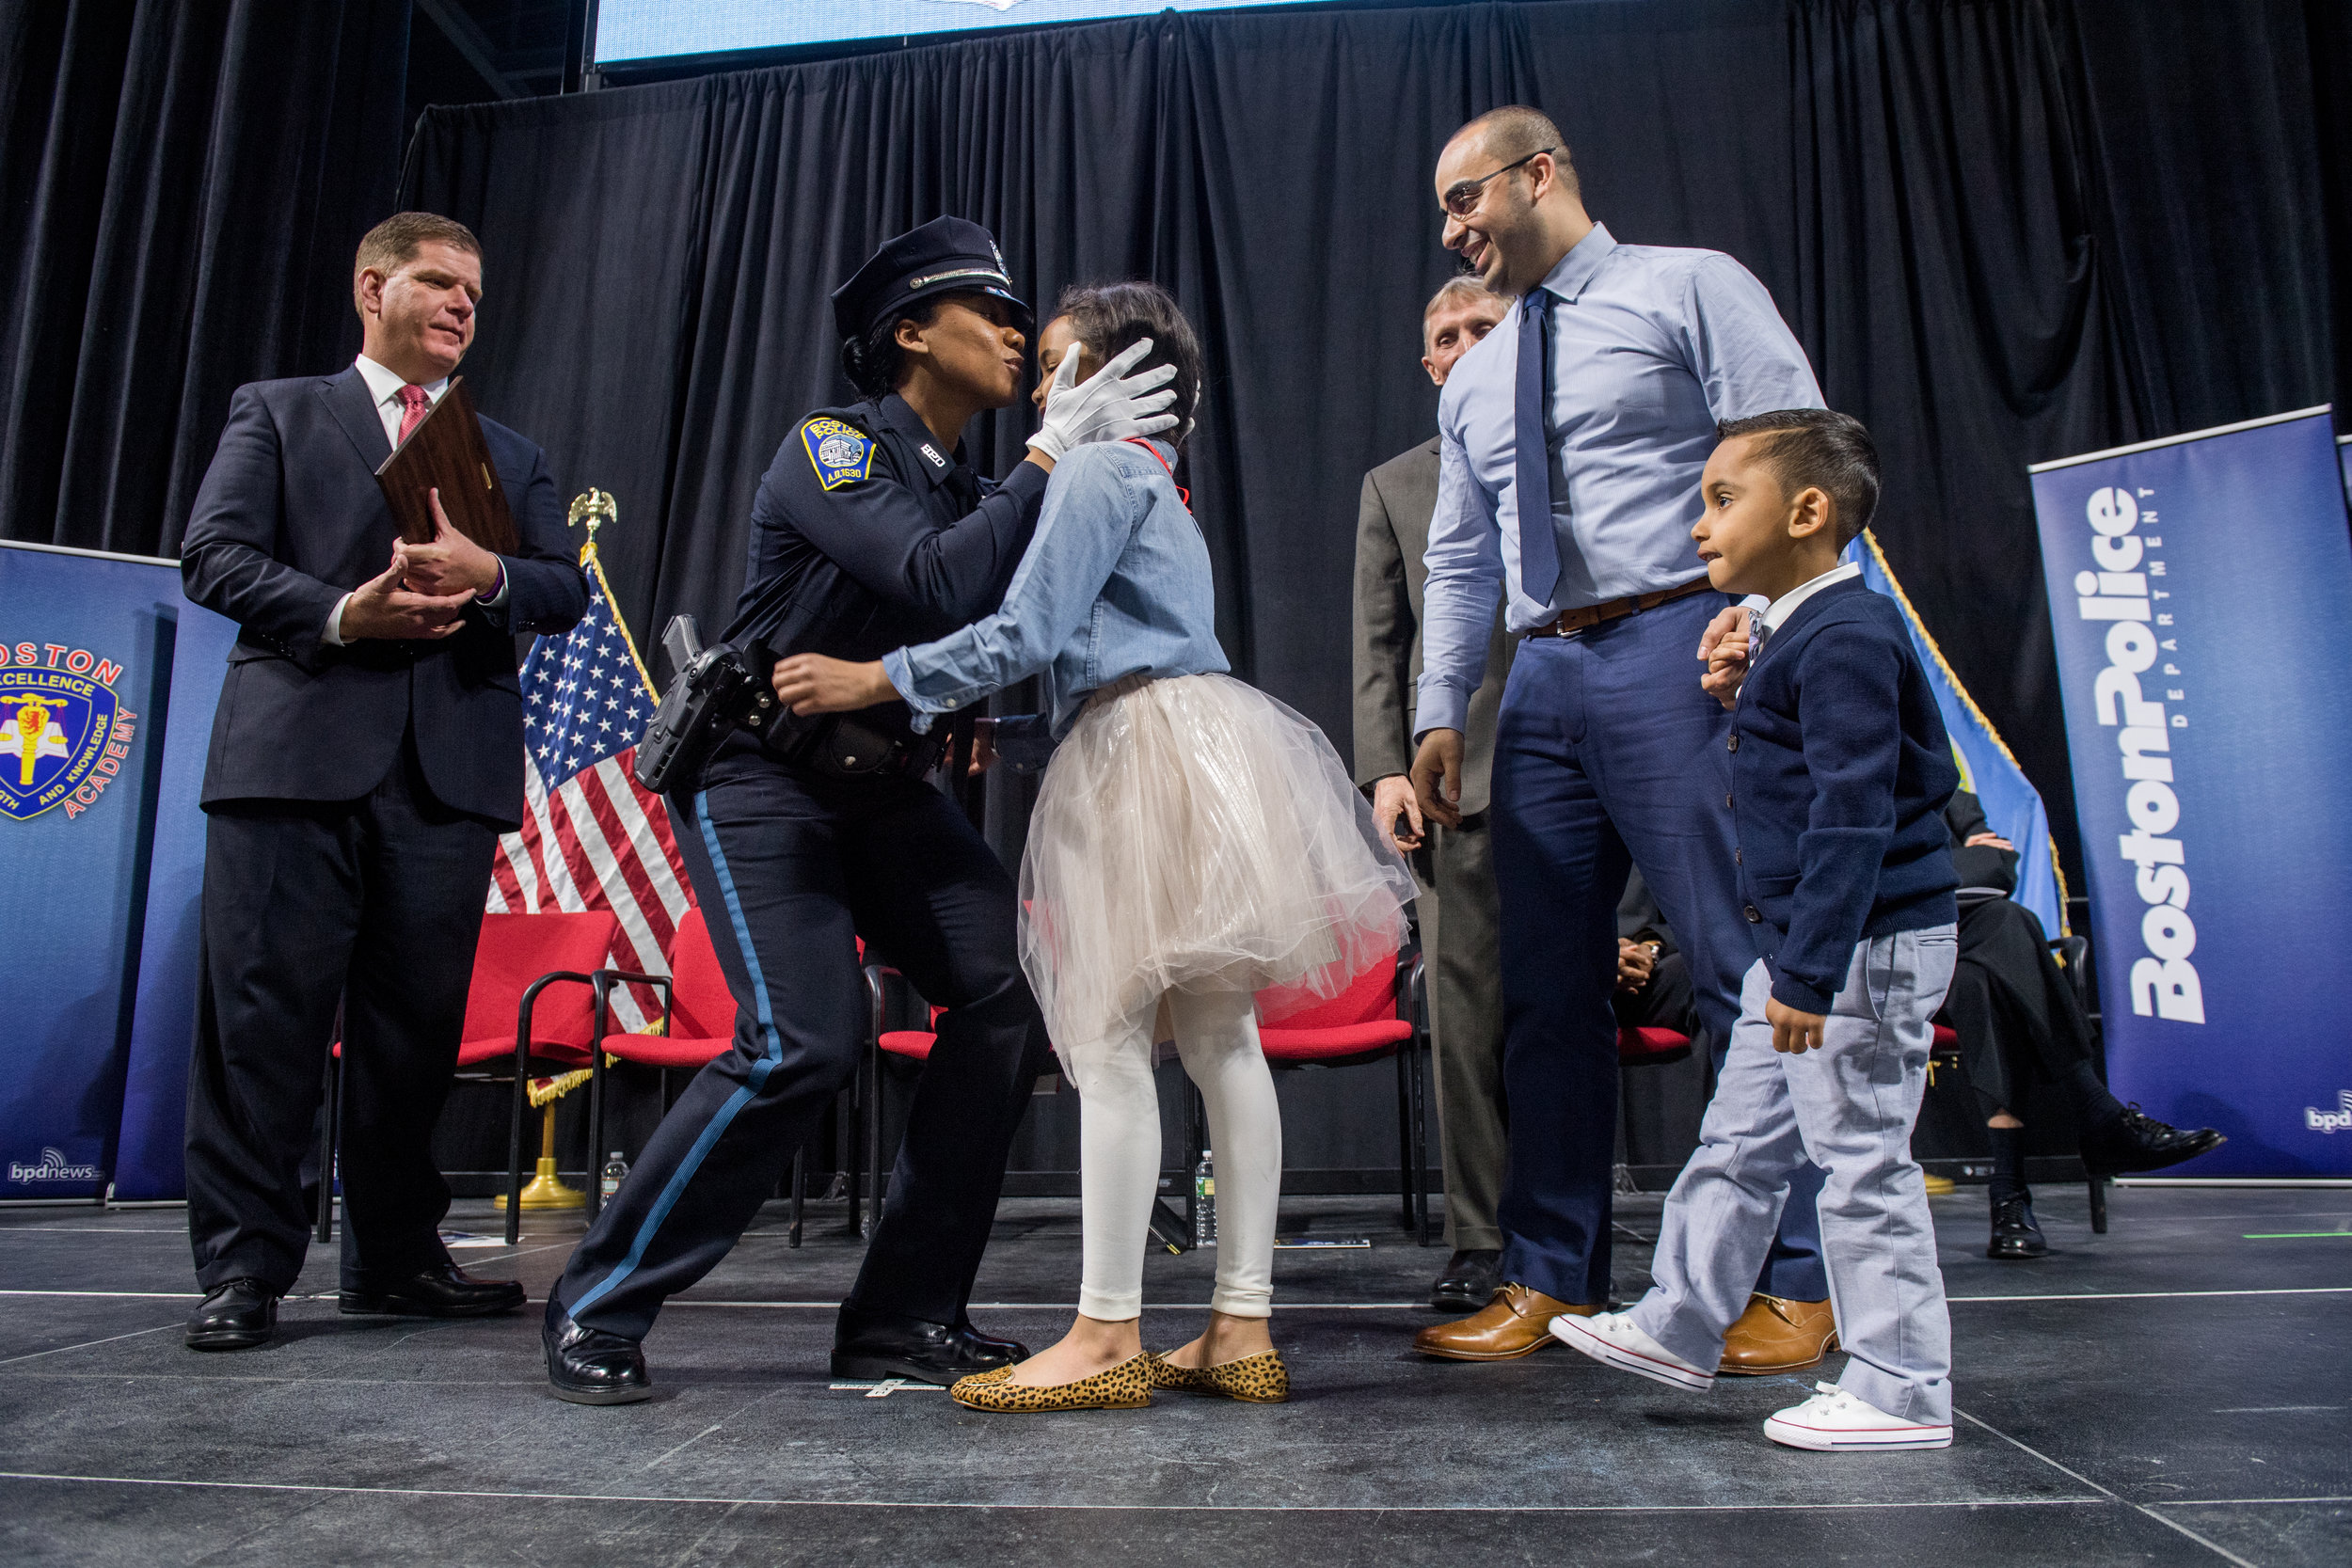 Jennifer L de los Santos kisses her daughter Nya, 8, after being pinned at the Boston Police Department Academy Graduation Class 57-17 April 10, 2018 at Agganis Arena. Looking on are Mayor Martin Walsh at left, Police Commissioner William B. Evans third from right , de los Santos' husband Jason, and their son Jace de los Santos, 4. Not pictured is their third child Jonas, age 2.